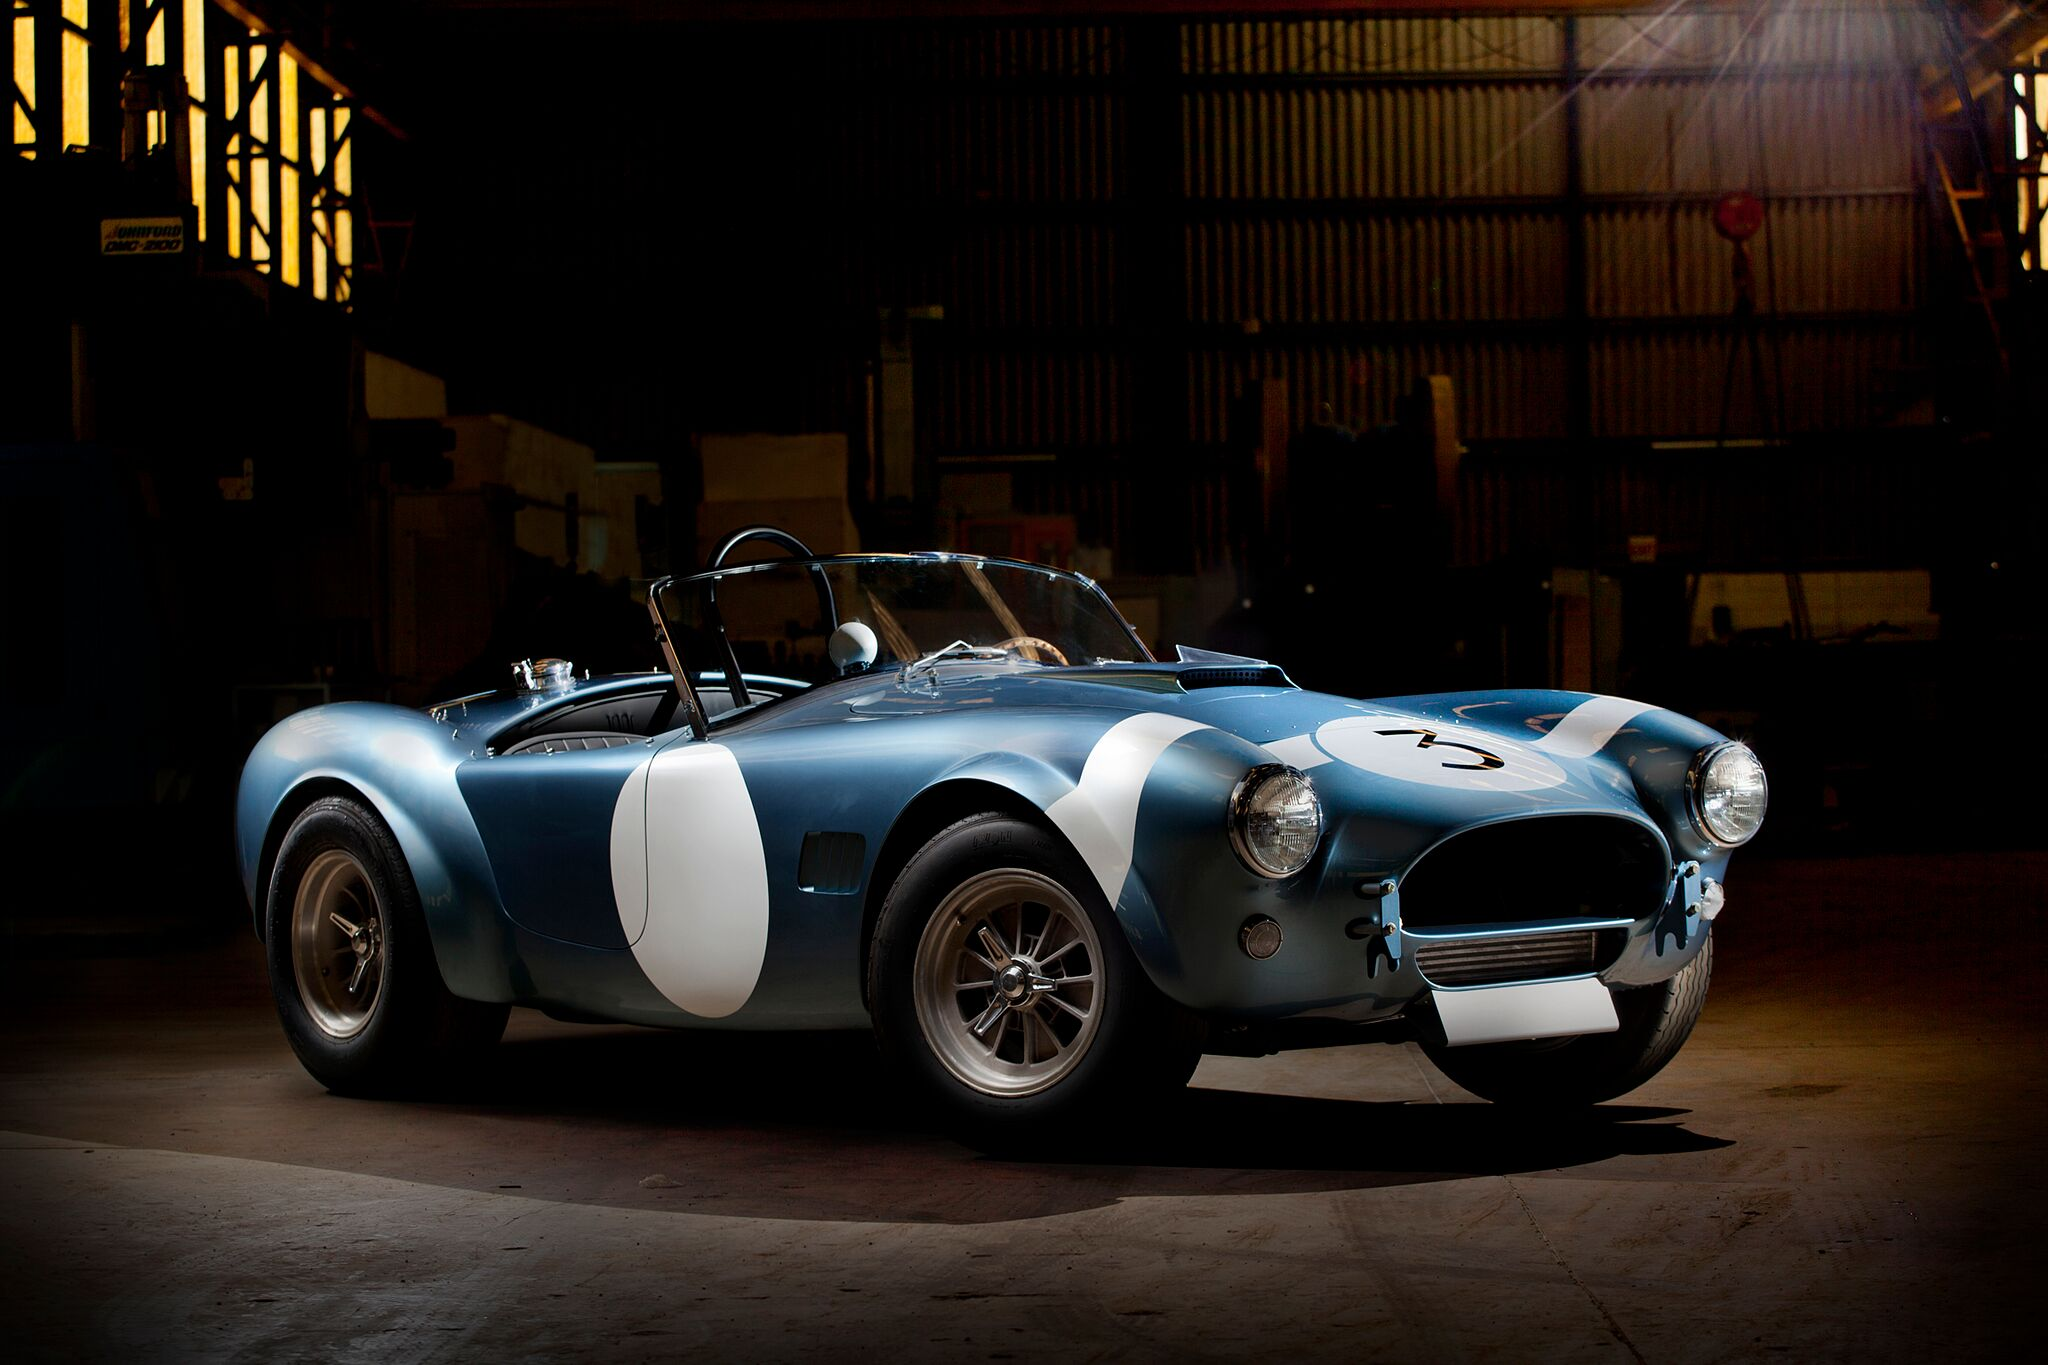 Bob Bondurant Edition Shelby Cobra FIA Roadster & Daytona Coupe